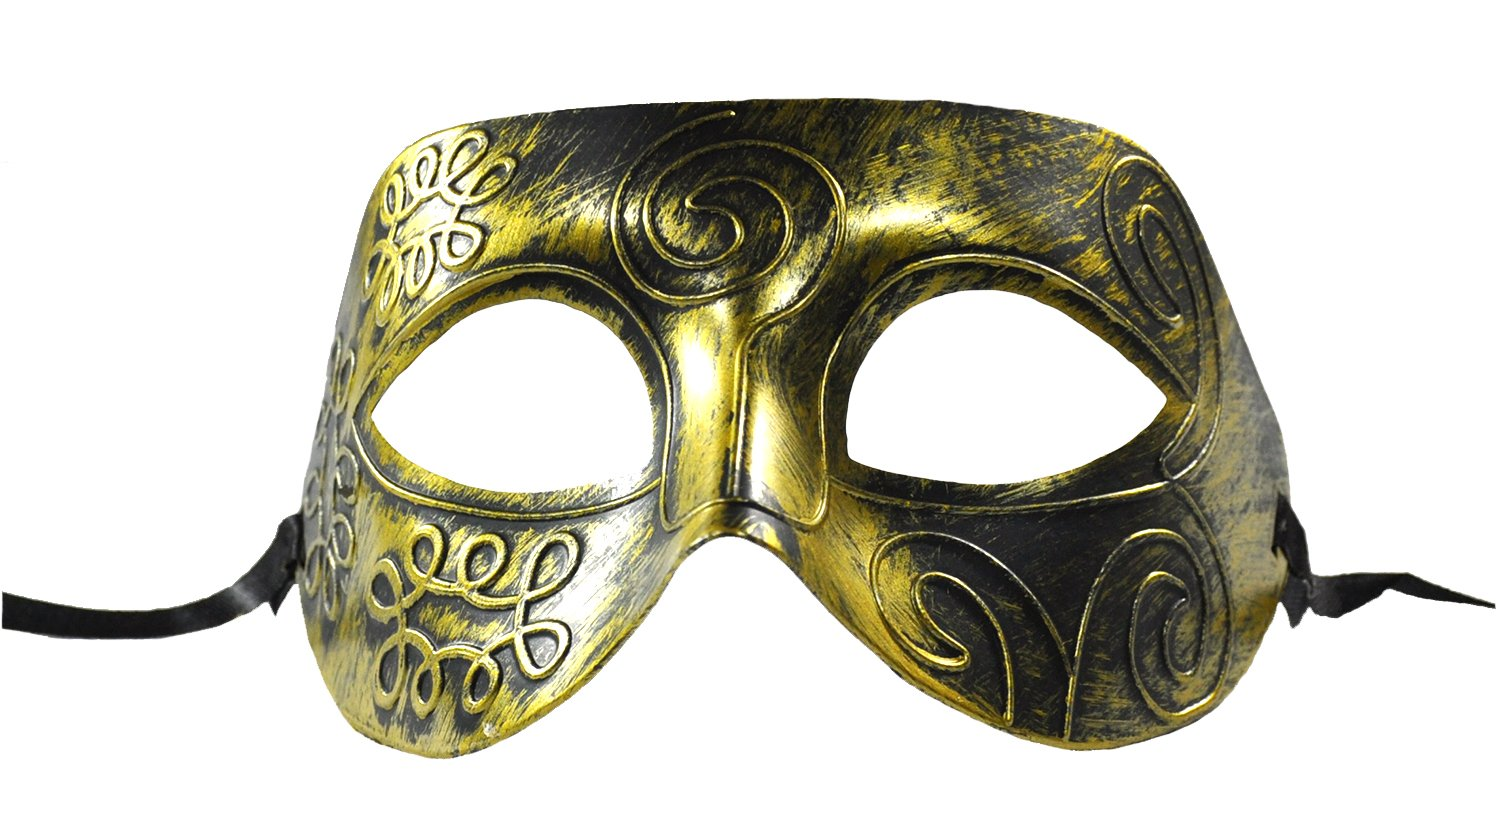 1Bay Men's Rustic Swirl Masquerade Mask With Body Jewelry Tattoos O/S Gold